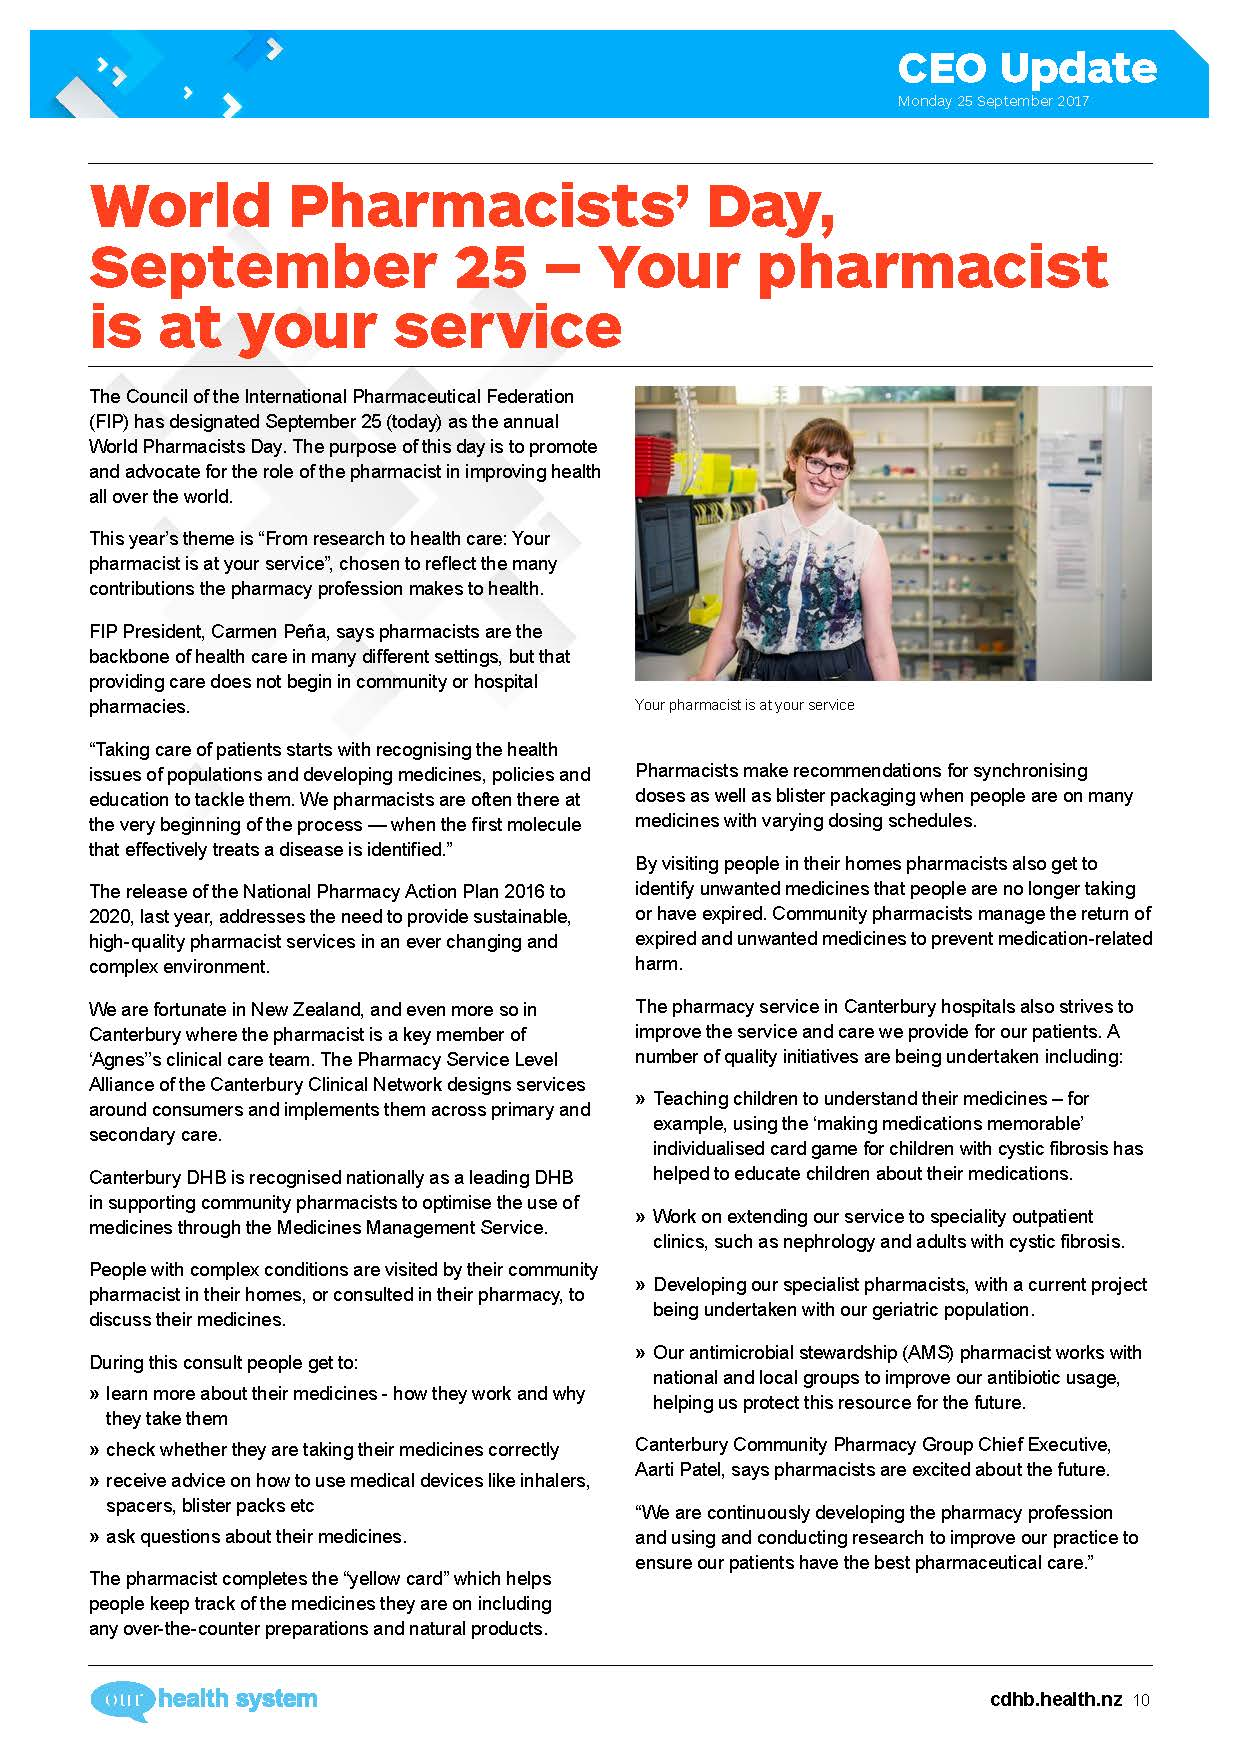 Work of pharmacists showcased in Canterbury District Health Board magazine